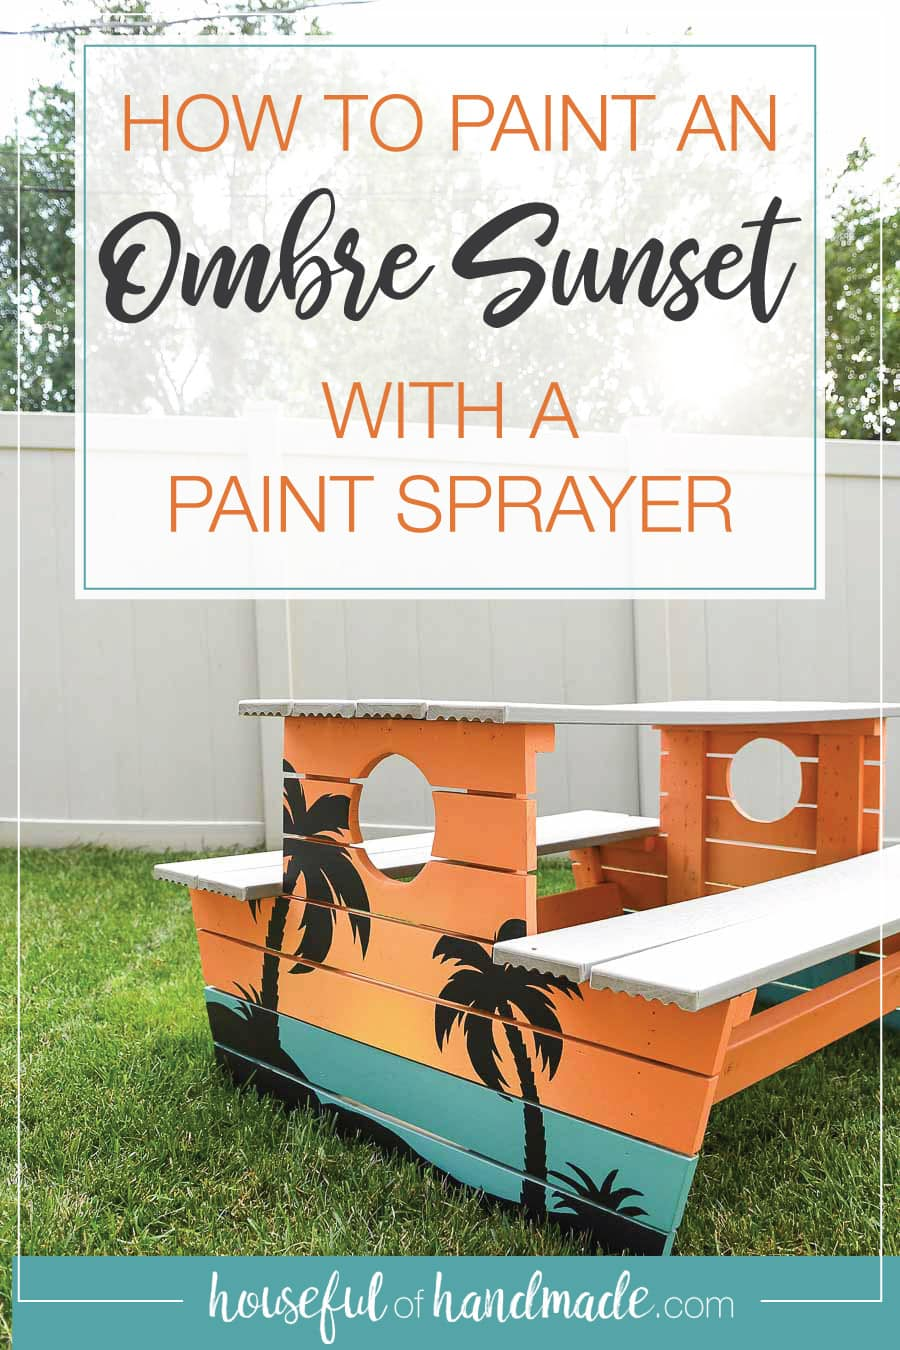 Picnic table painted with an ombre sunset with palm trees over the top with words: How to Paint an Ombre Sunset with a Paint Sprayer in it.